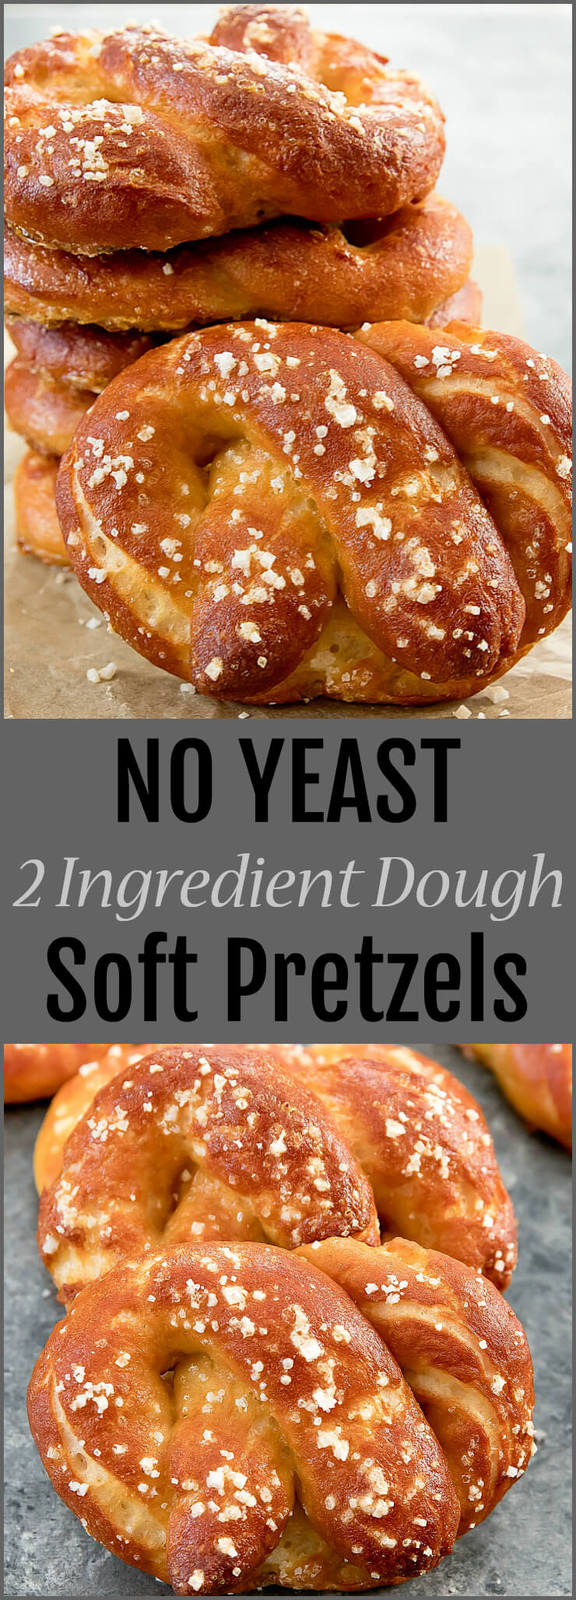 No Yeast (2 Ingredient Dough) Soft Pretzels. No kneading or proofing. This recipe uses a 2 ingredient dough for its base. Pretzels are ready in less than an hour!